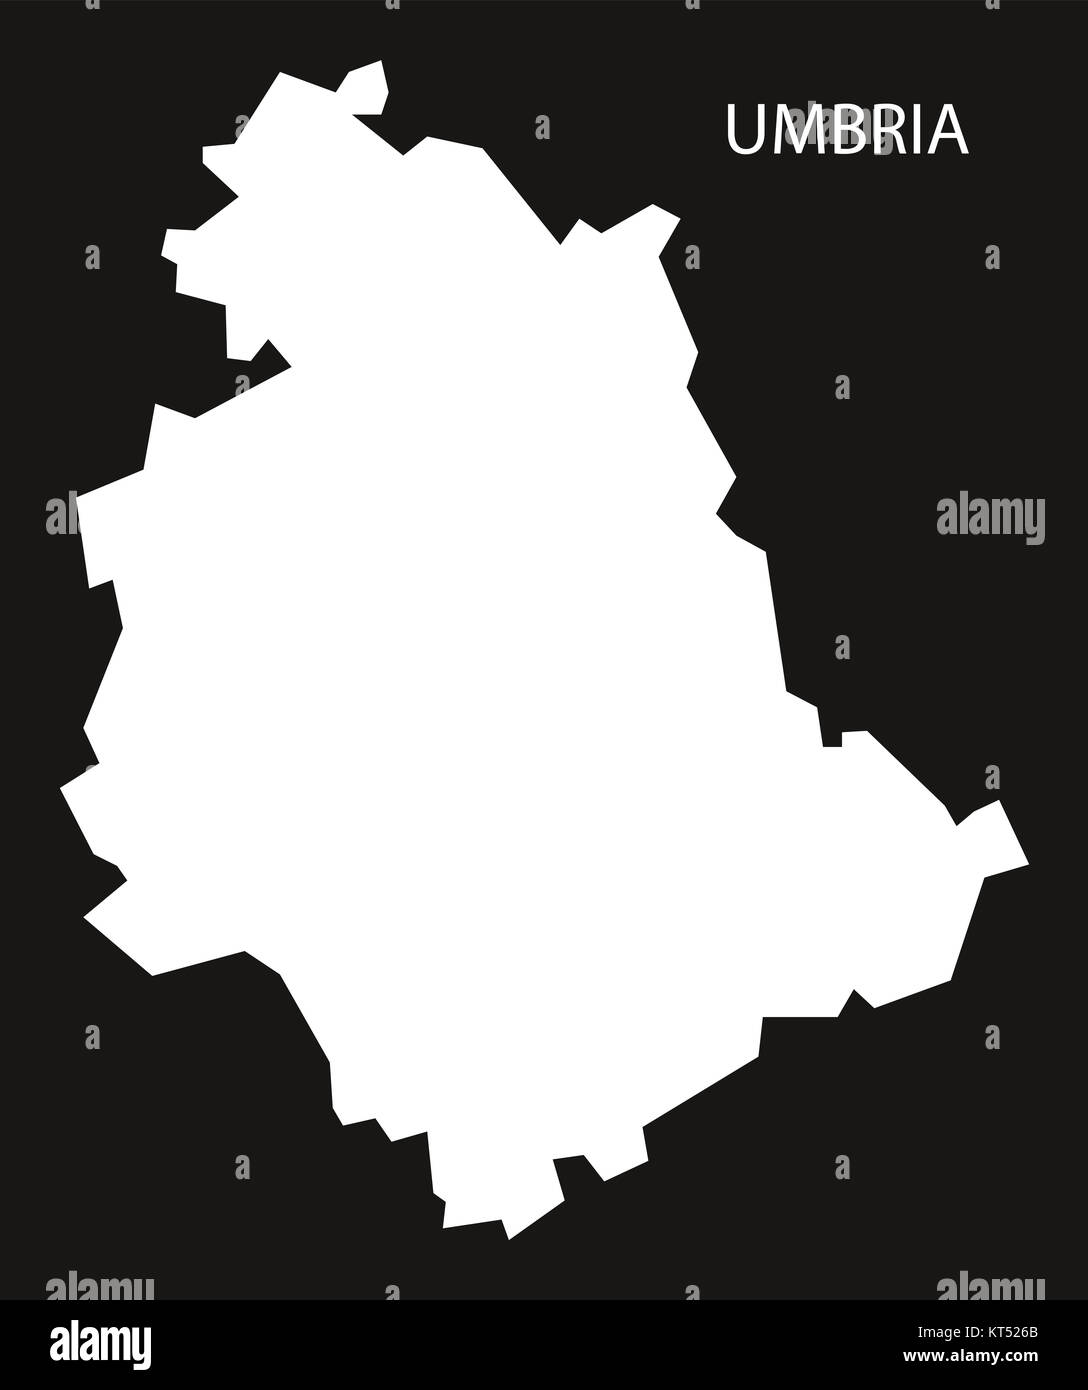 Umbria Italy Map Black Inverted Silhouette Stock Photo 169756563